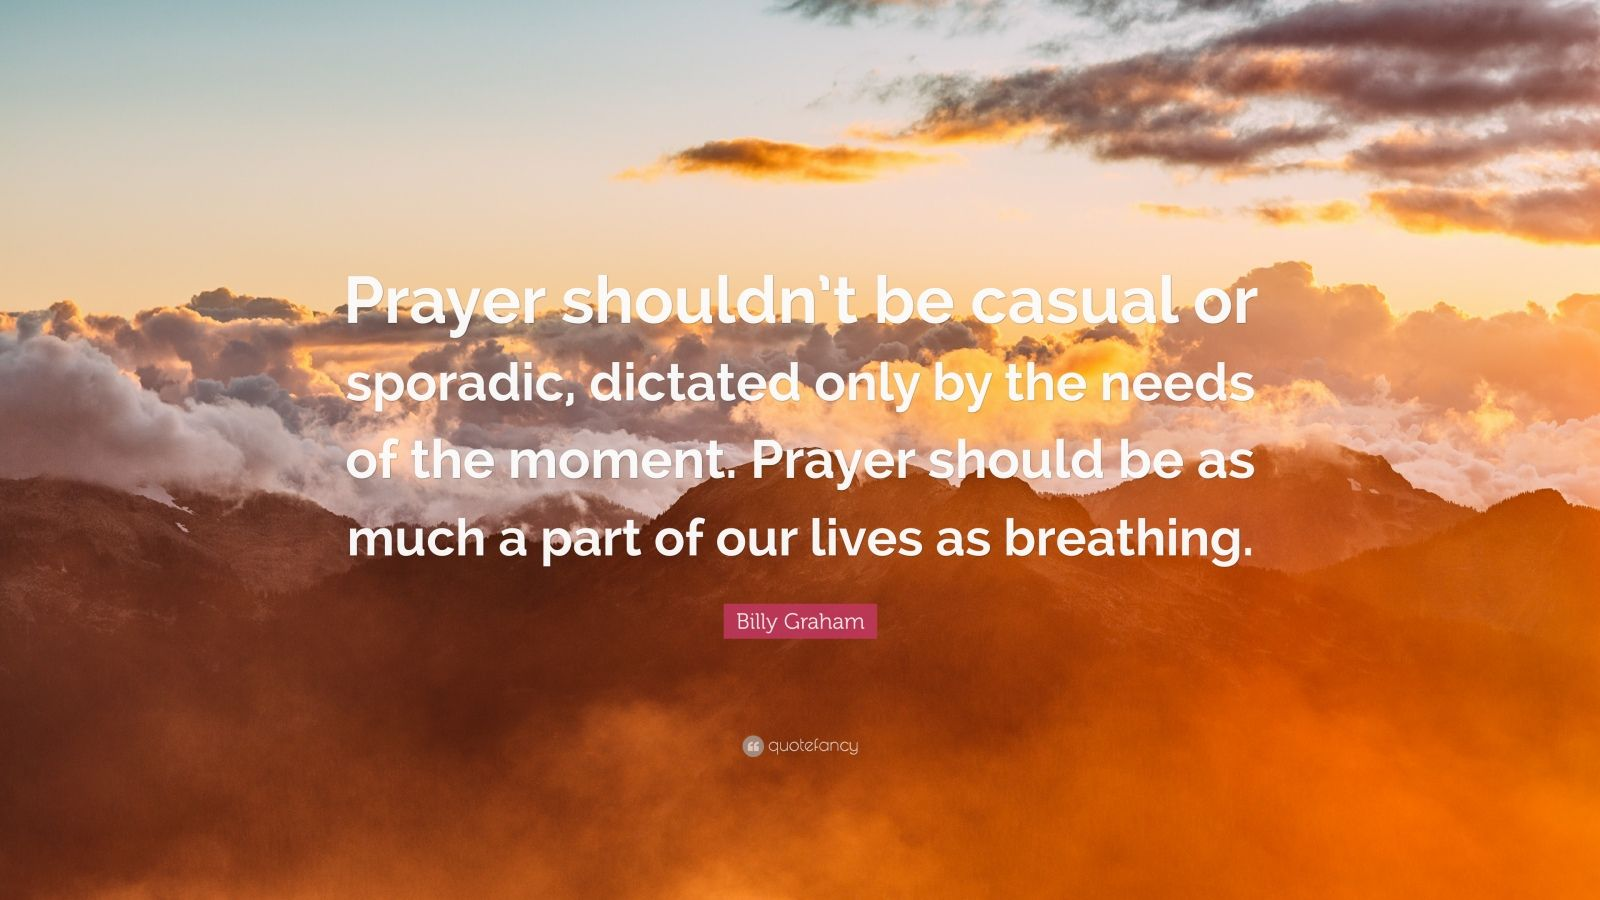 """Billy Graham Quote: """"Prayer shouldn't be casual or sporadic, dictated only by the needs of the moment. Prayer should be as much a part of our lives as breathing."""""""